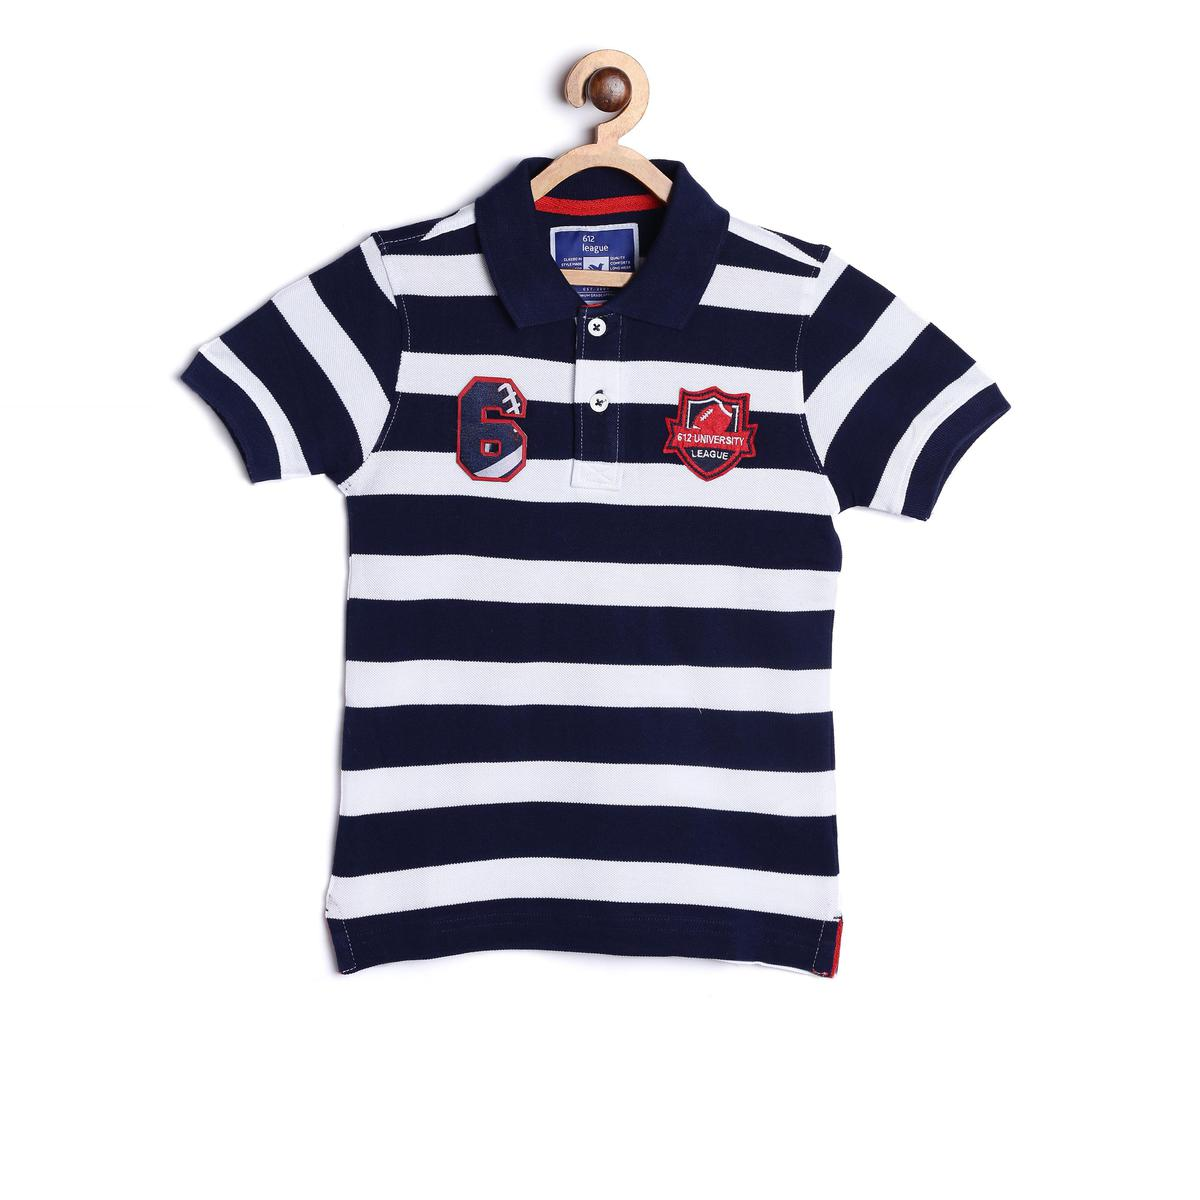 612 League - Blue Colored Collar Basic Rugby Striped Tees T-shirt For Boys